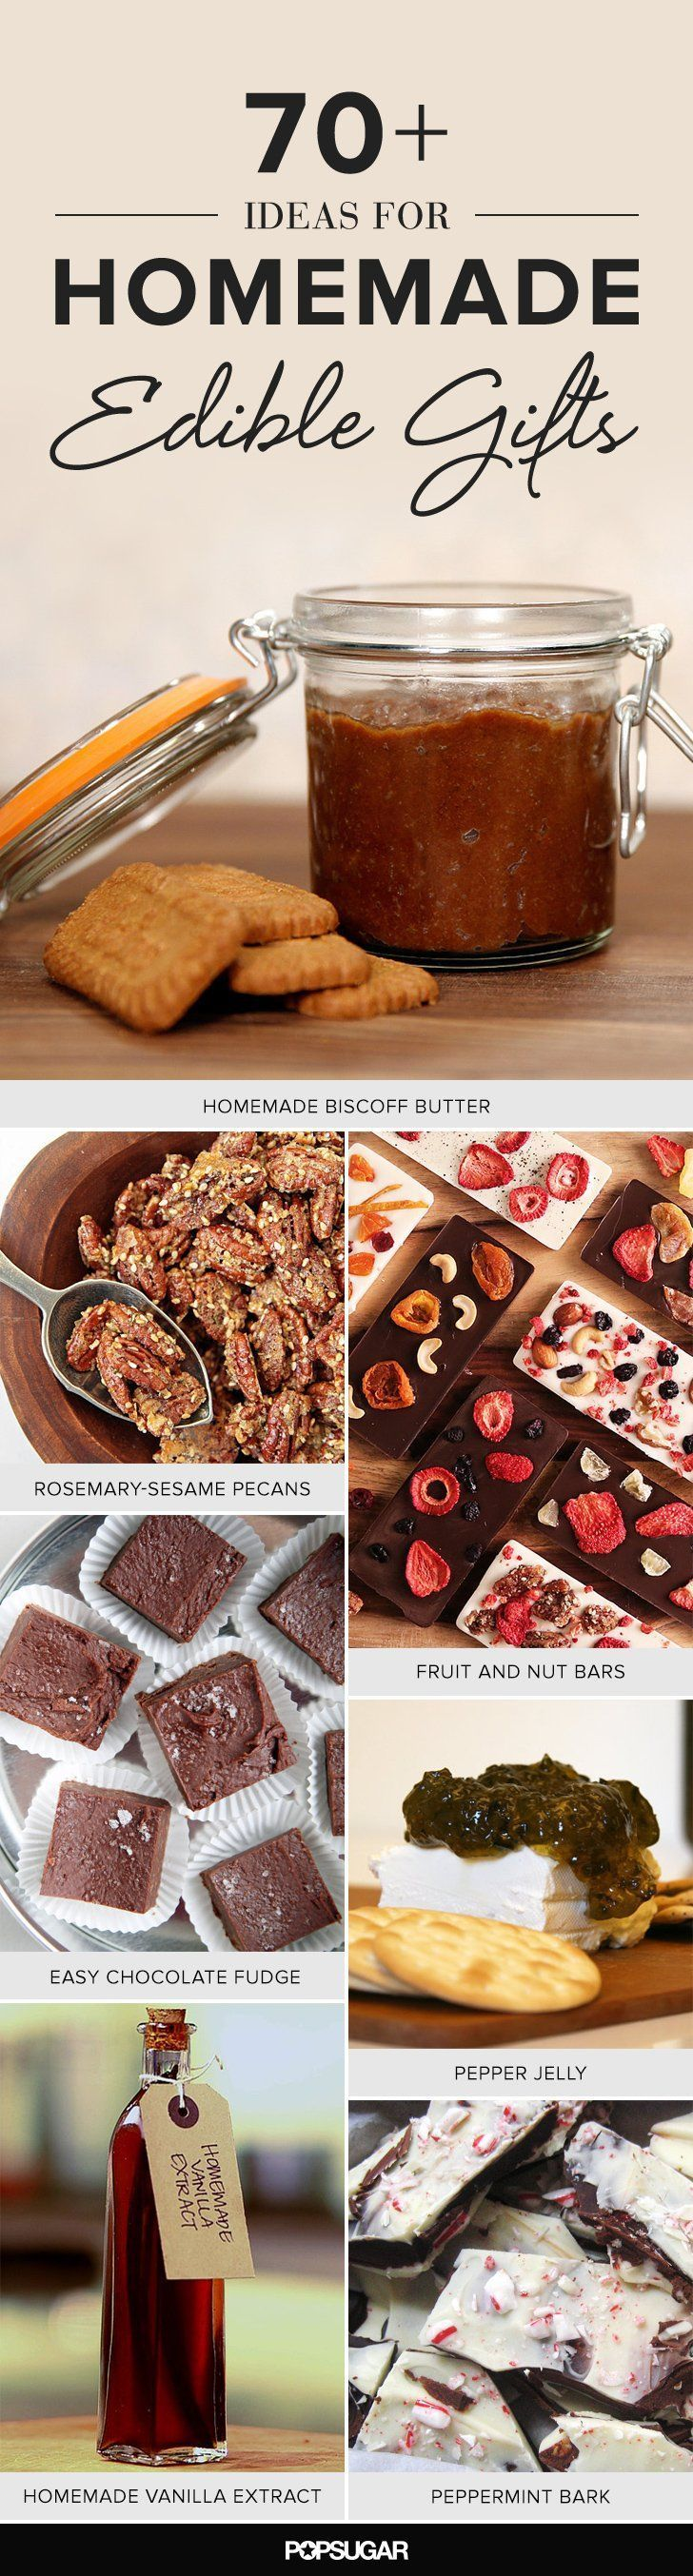 100 Ideas For Homemade Edible Gifts | Pinterest | Homemade, Holidays ...